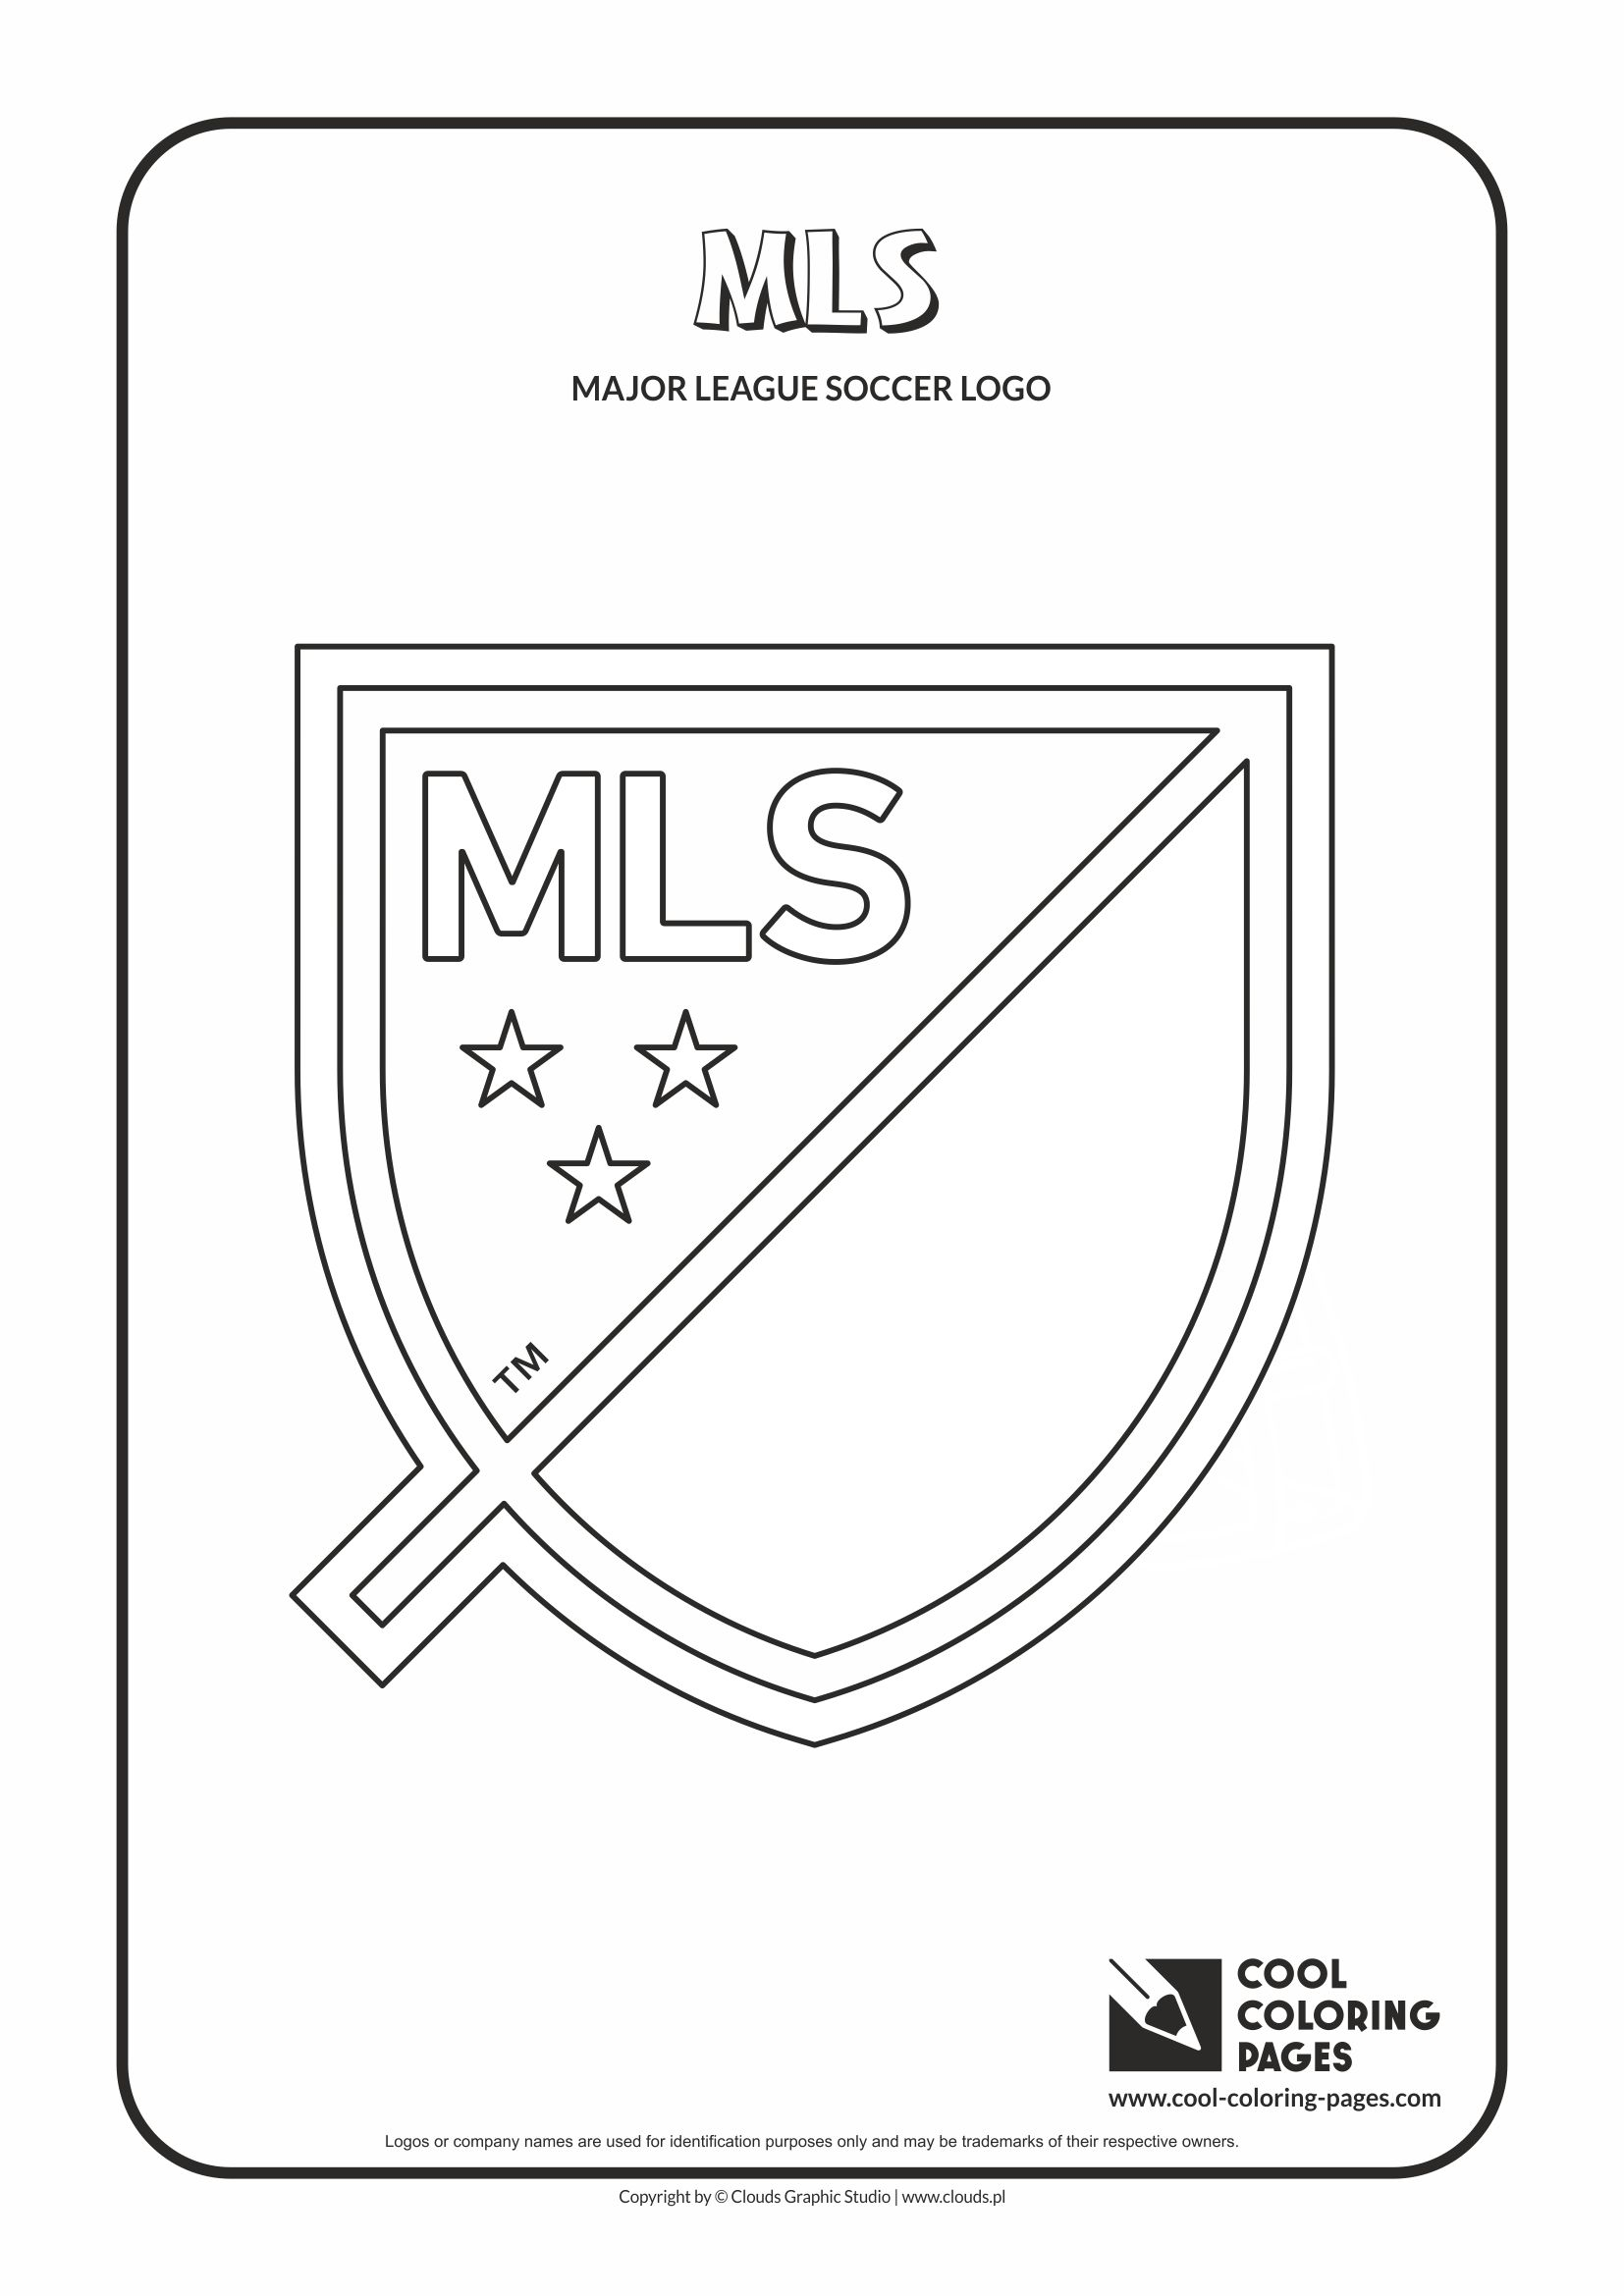 MLS logo coloring pages - Cool Coloring Pages